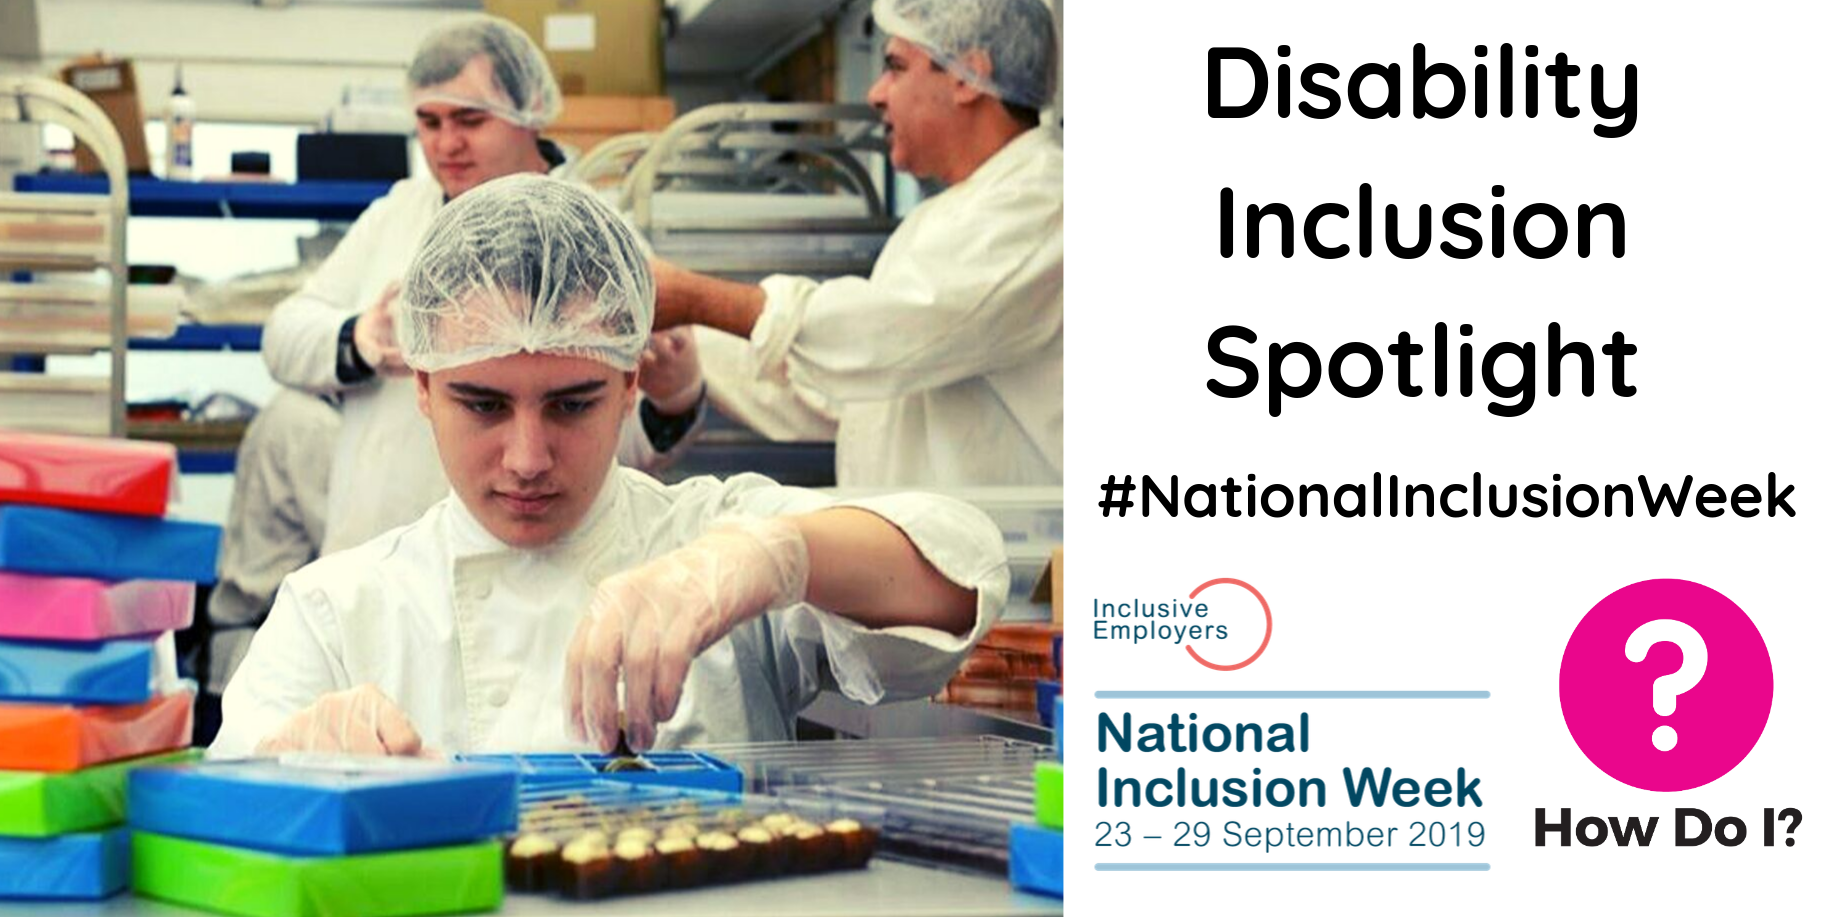 Alt text: Harry Specters employees are pictured baking chocolate and putting the delicious chocolates inside multi-coloured boxes. The banner says Disability Inclusion Spotlight #NationalInclusionWeek, with the How Do I? and National Inclusion week logos.